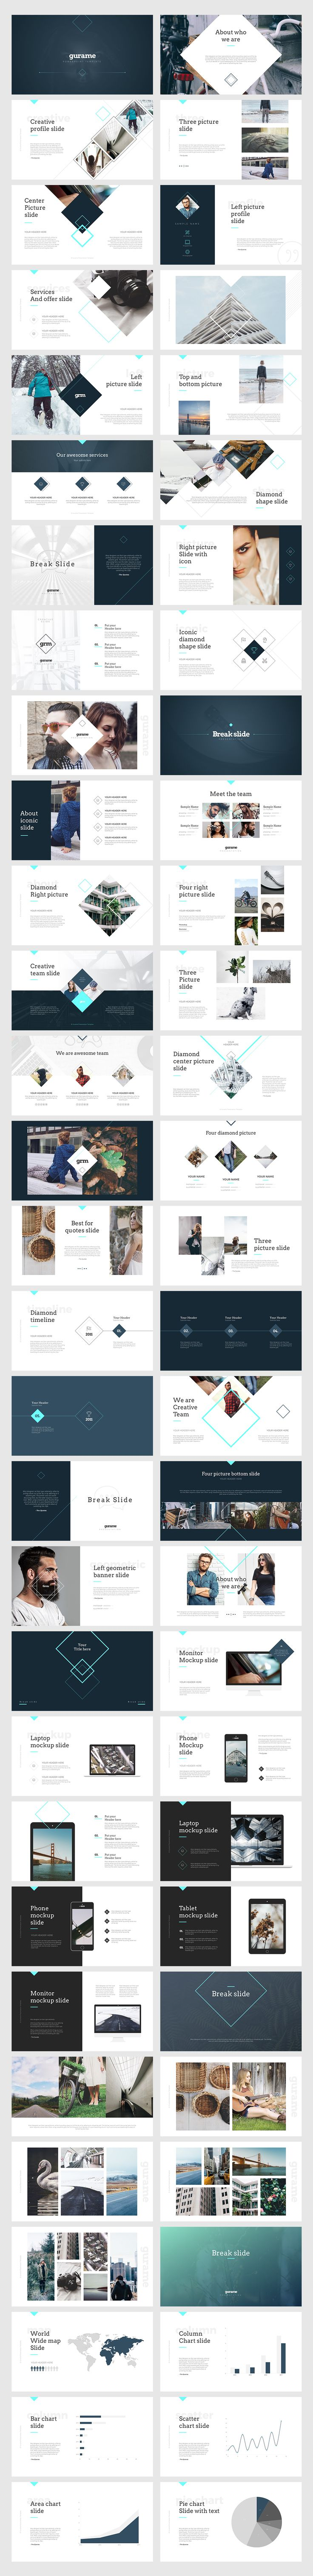 The 25 best powerpoint animation ideas on pinterest gurame powerpoint template by angkalimabelas on creativemarket toneelgroepblik Image collections